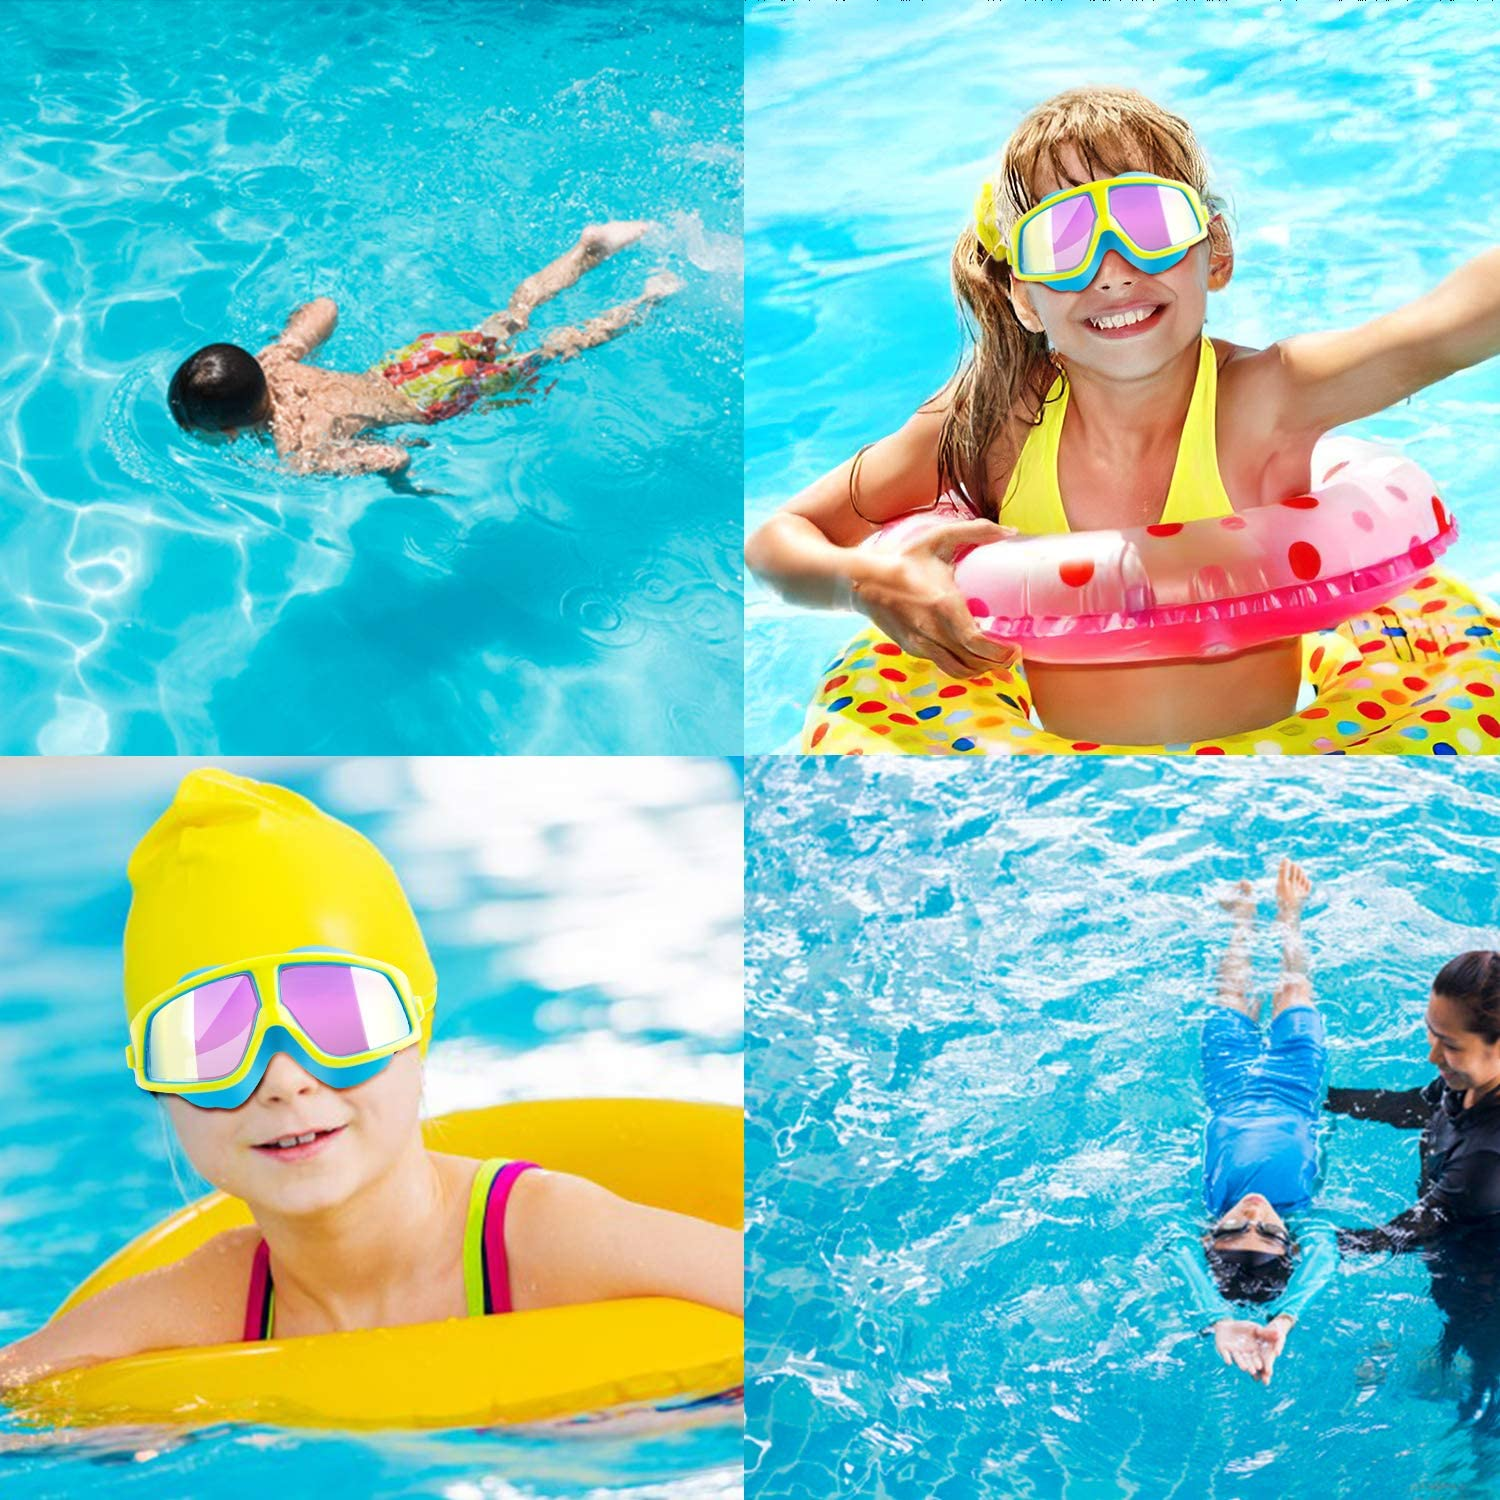 Tsuinz Kids Swimming Goggles No Leaking Anti Fog UV Protection Clear Lens Kids Swim Goggles Soft Silicone Frame Swim Glasses for Children with Built-in earplugs and Absorbent Case